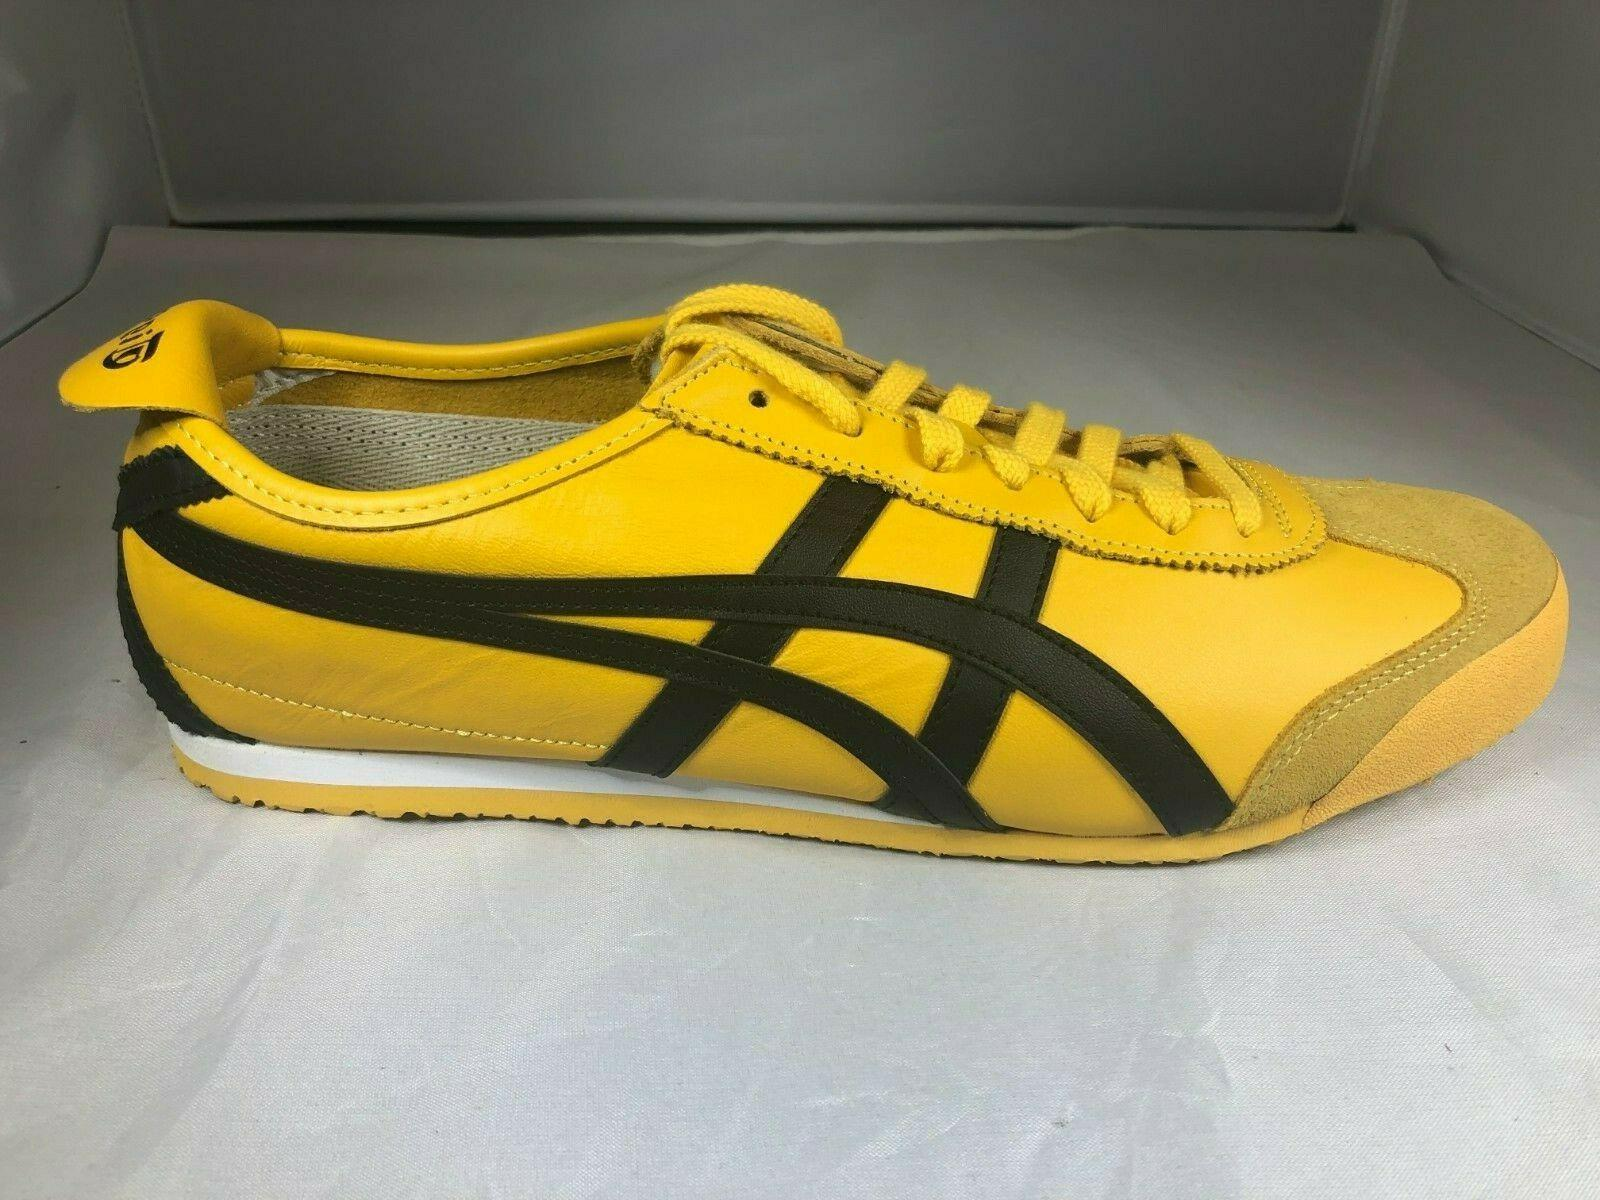 MENS ASICS ONITSUKA TIGER MEXICO DL408 SNEAKERS-SHOES-SIZE 11.5,12